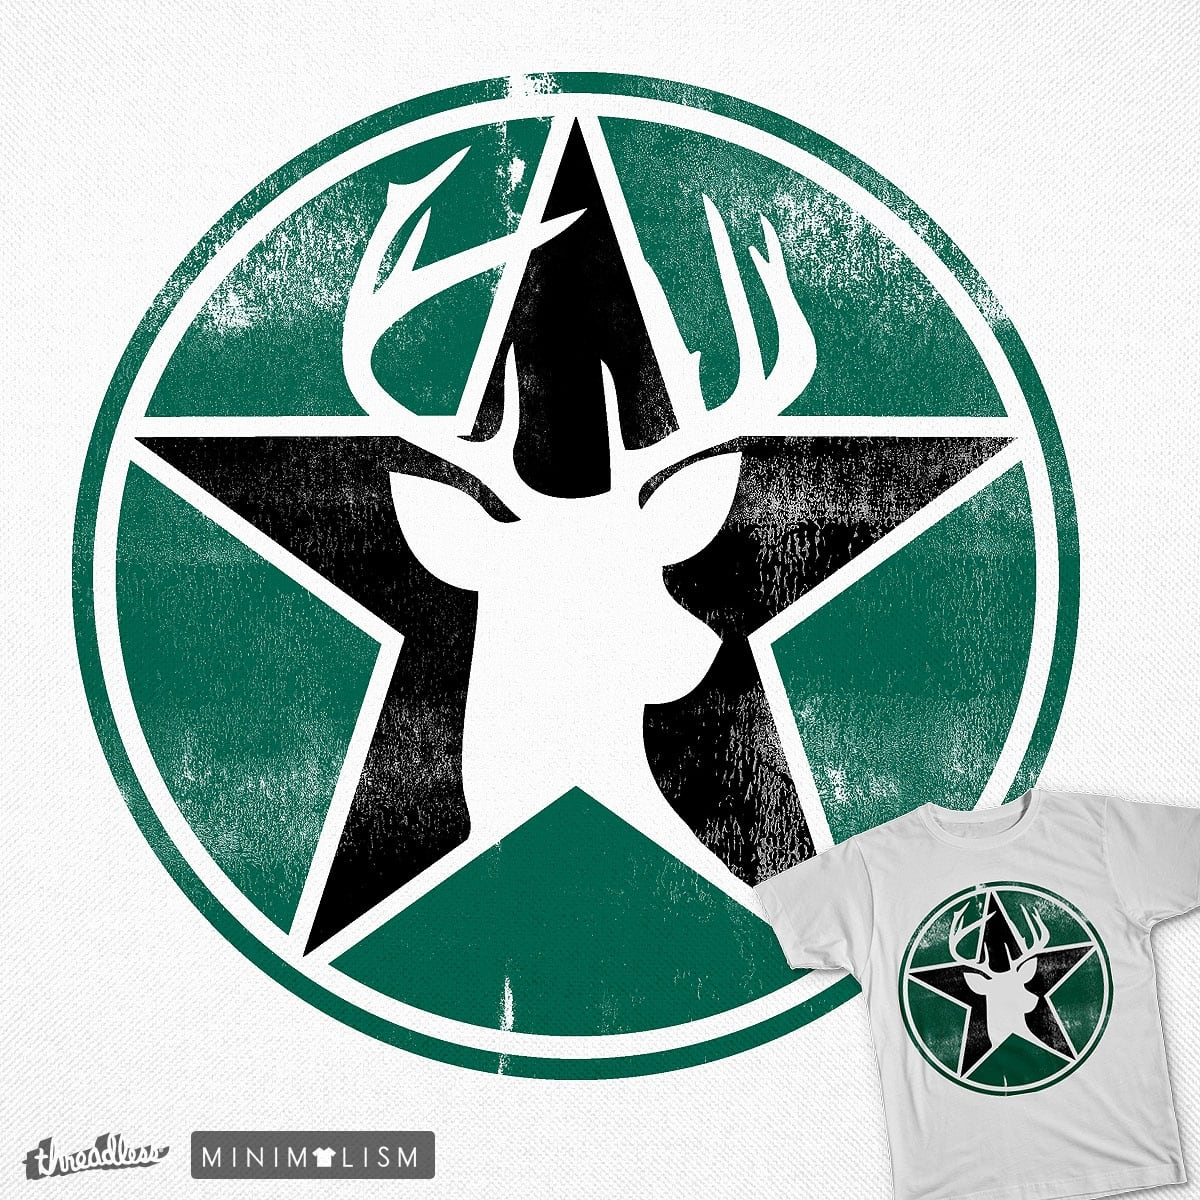 STAR BUCKS by Agimat ni Ingkong on Threadless